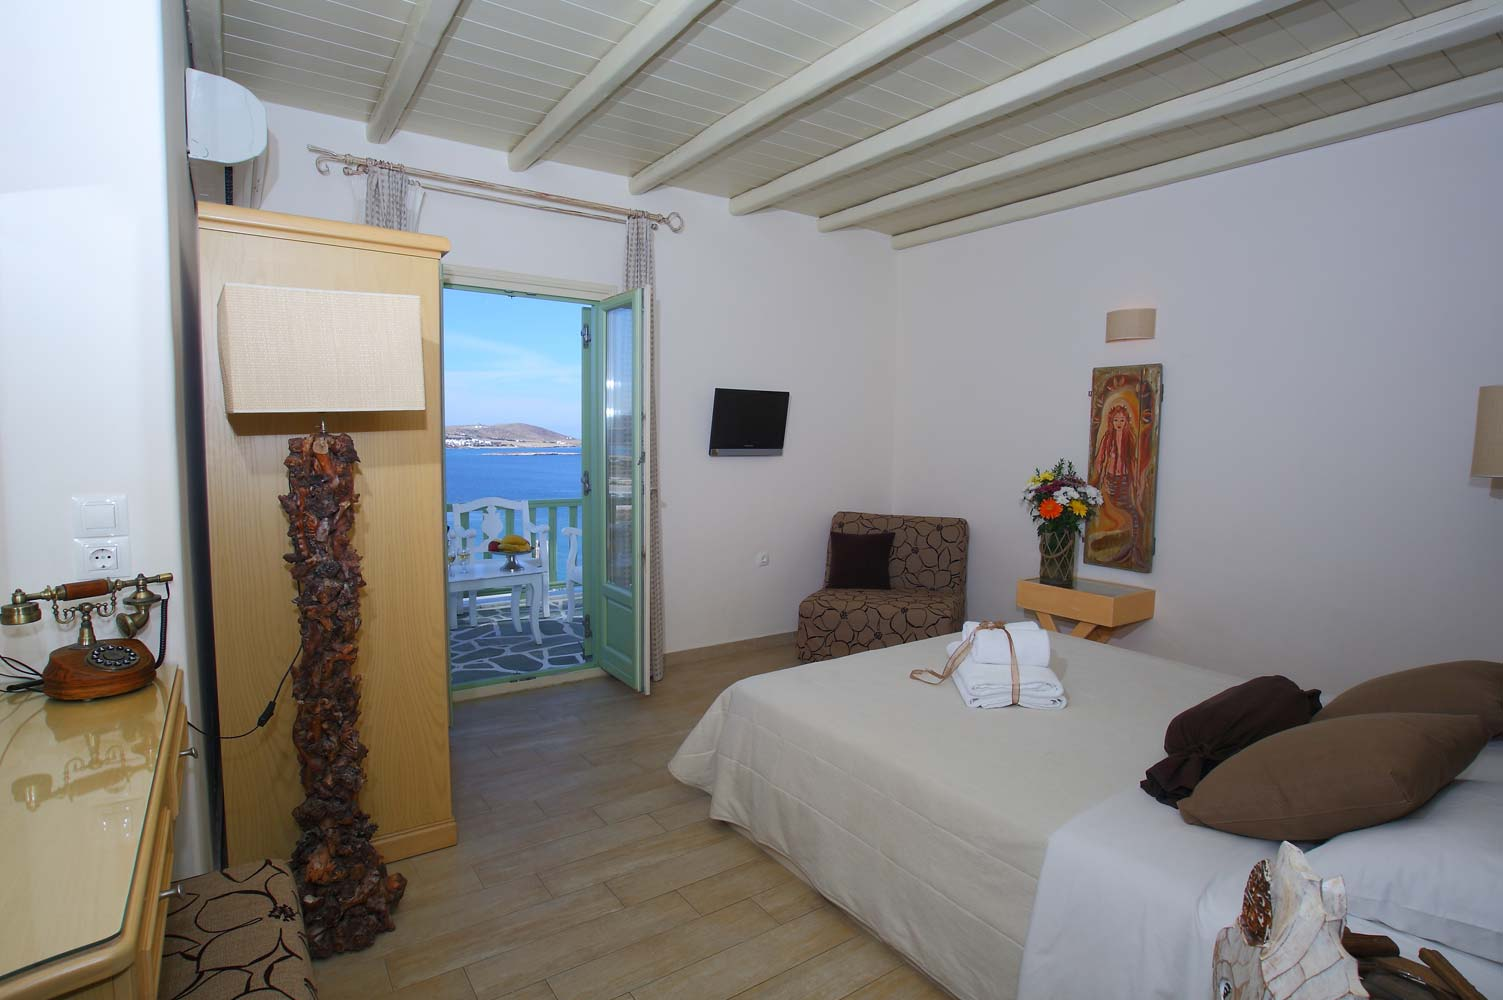 Room Size 20 square meters Bed Size